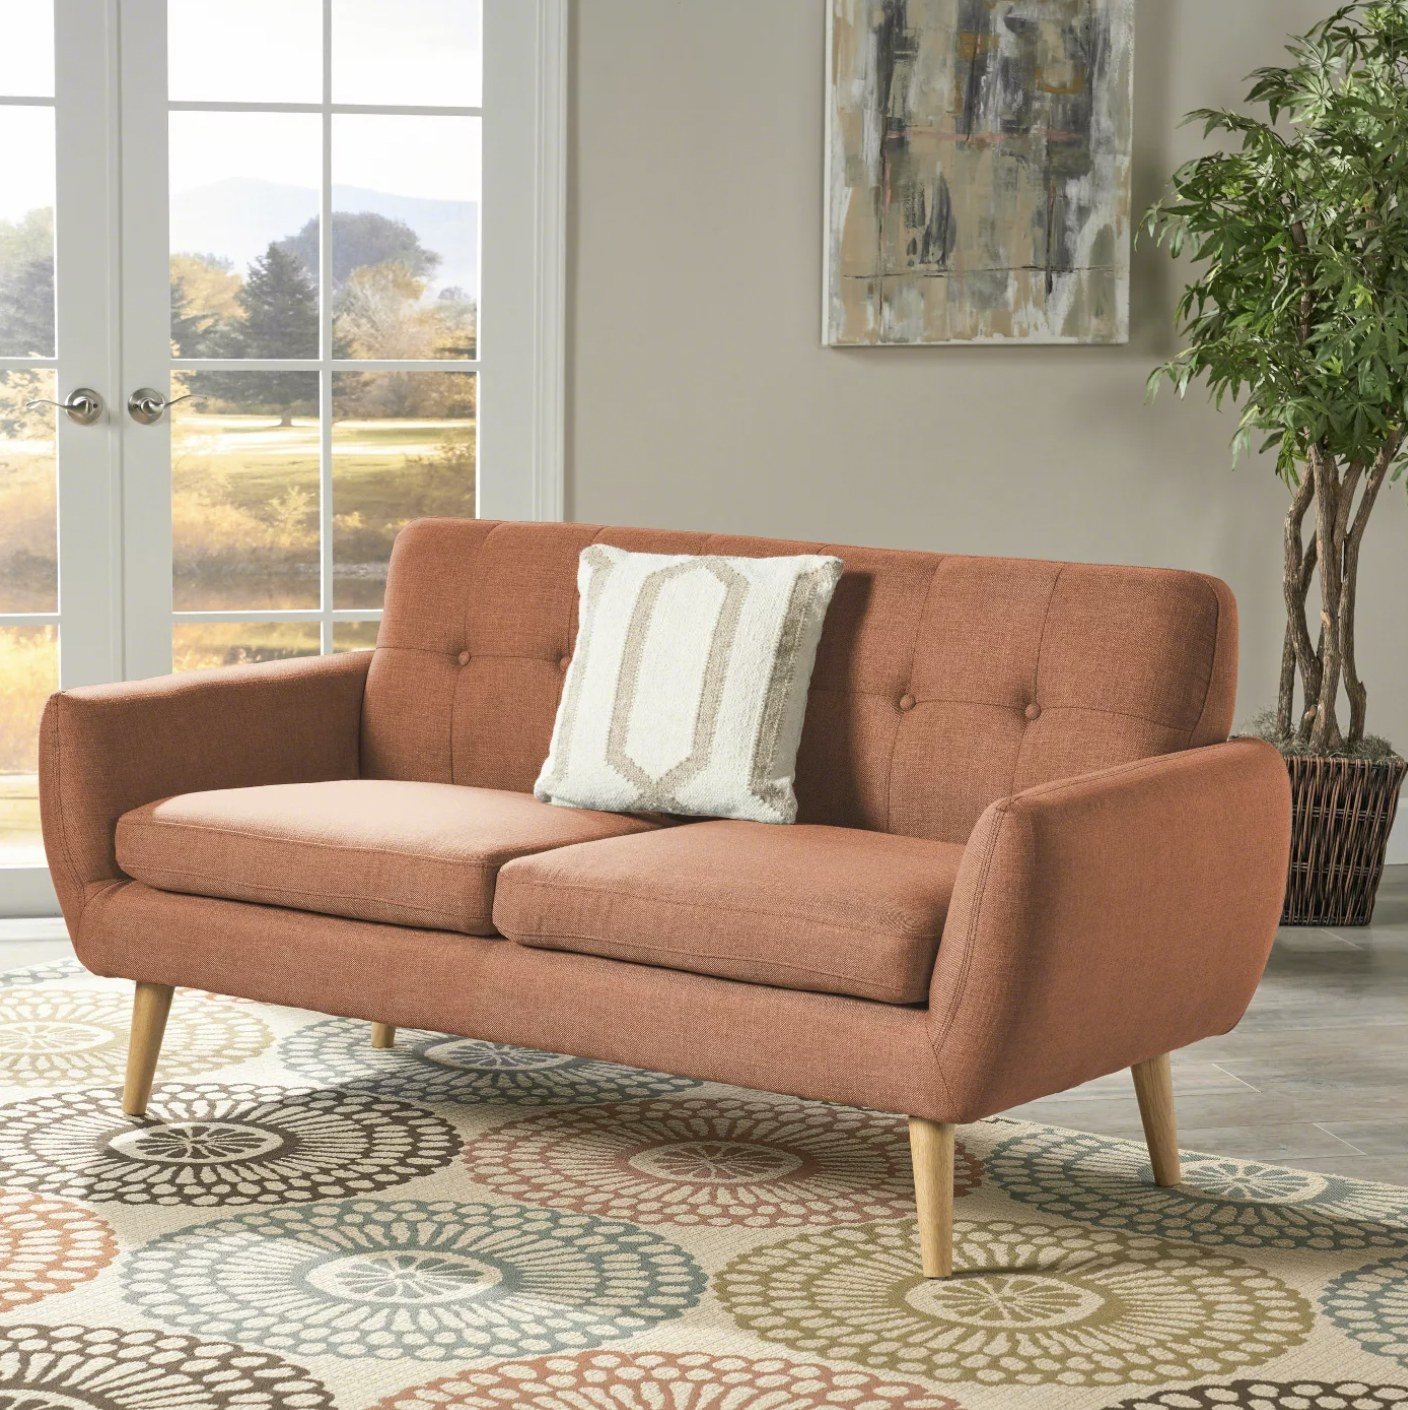 A burnt orange petite sofa in a living space